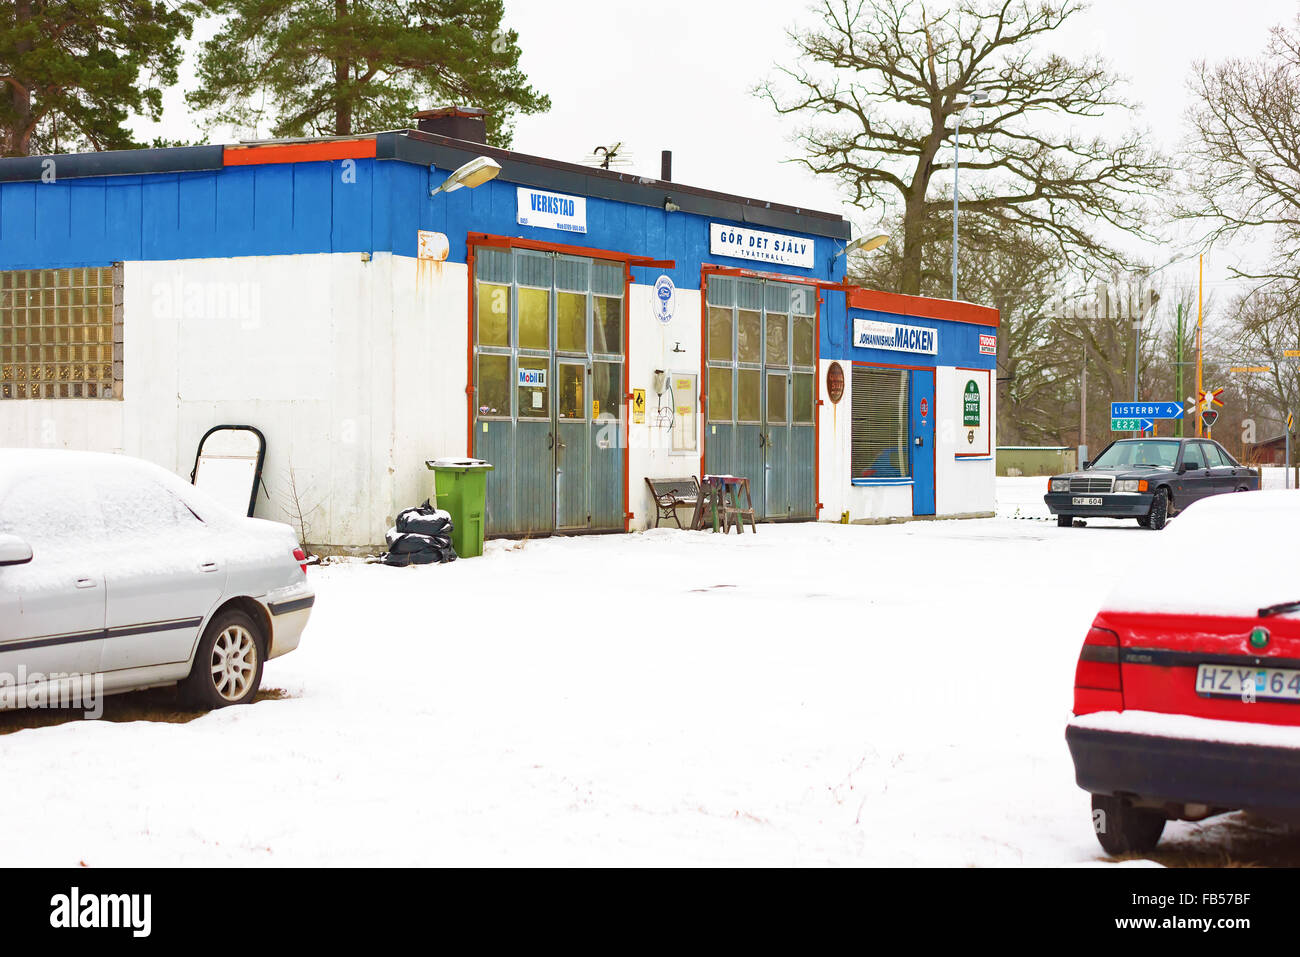 Johannishus sweden january 8 2016 the auto repair shop houses a johannishus sweden january 8 2016 the auto repair shop houses a garage and a do it yourself car wash snow outside and clos solutioingenieria Choice Image